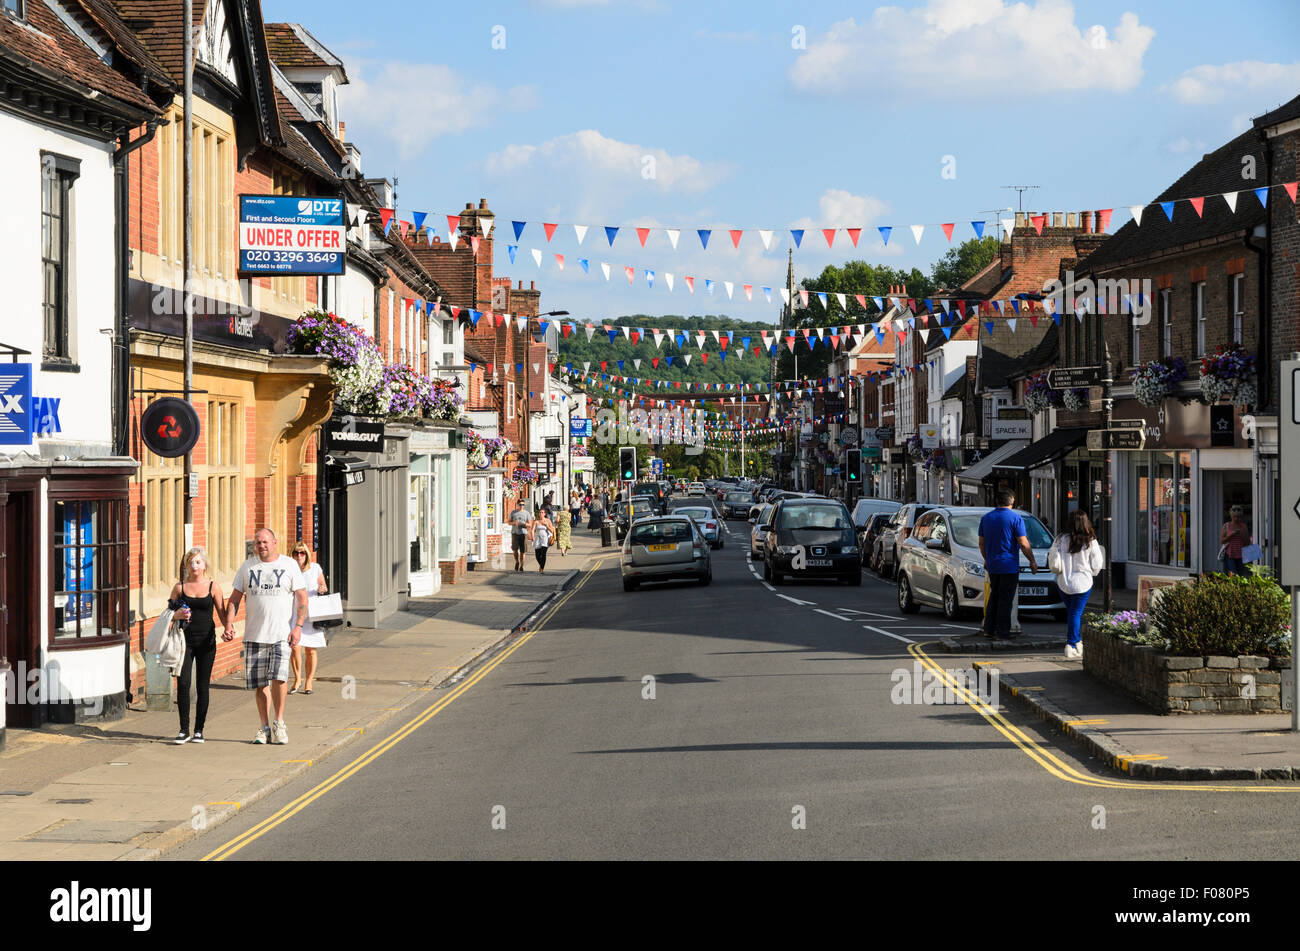 The High Street, Marlow, Buckinghamshire, England, UK. Stock Photo